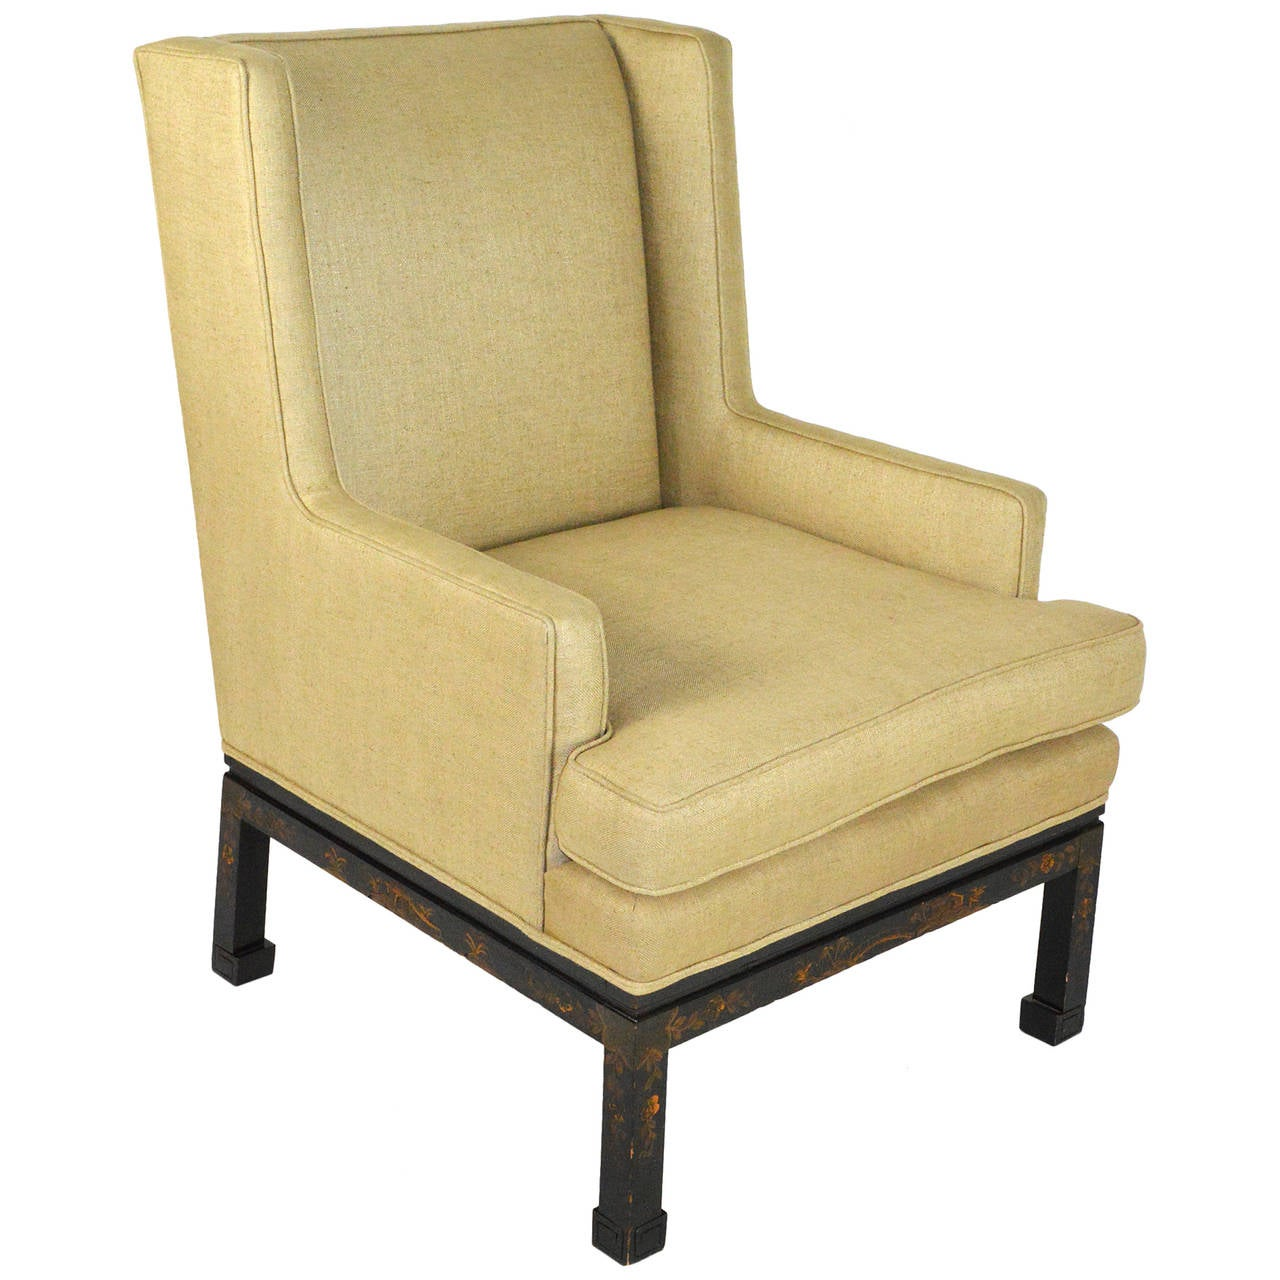 Mid-20th Century Chinese Chippendale Style Wingback Armchair For Sale